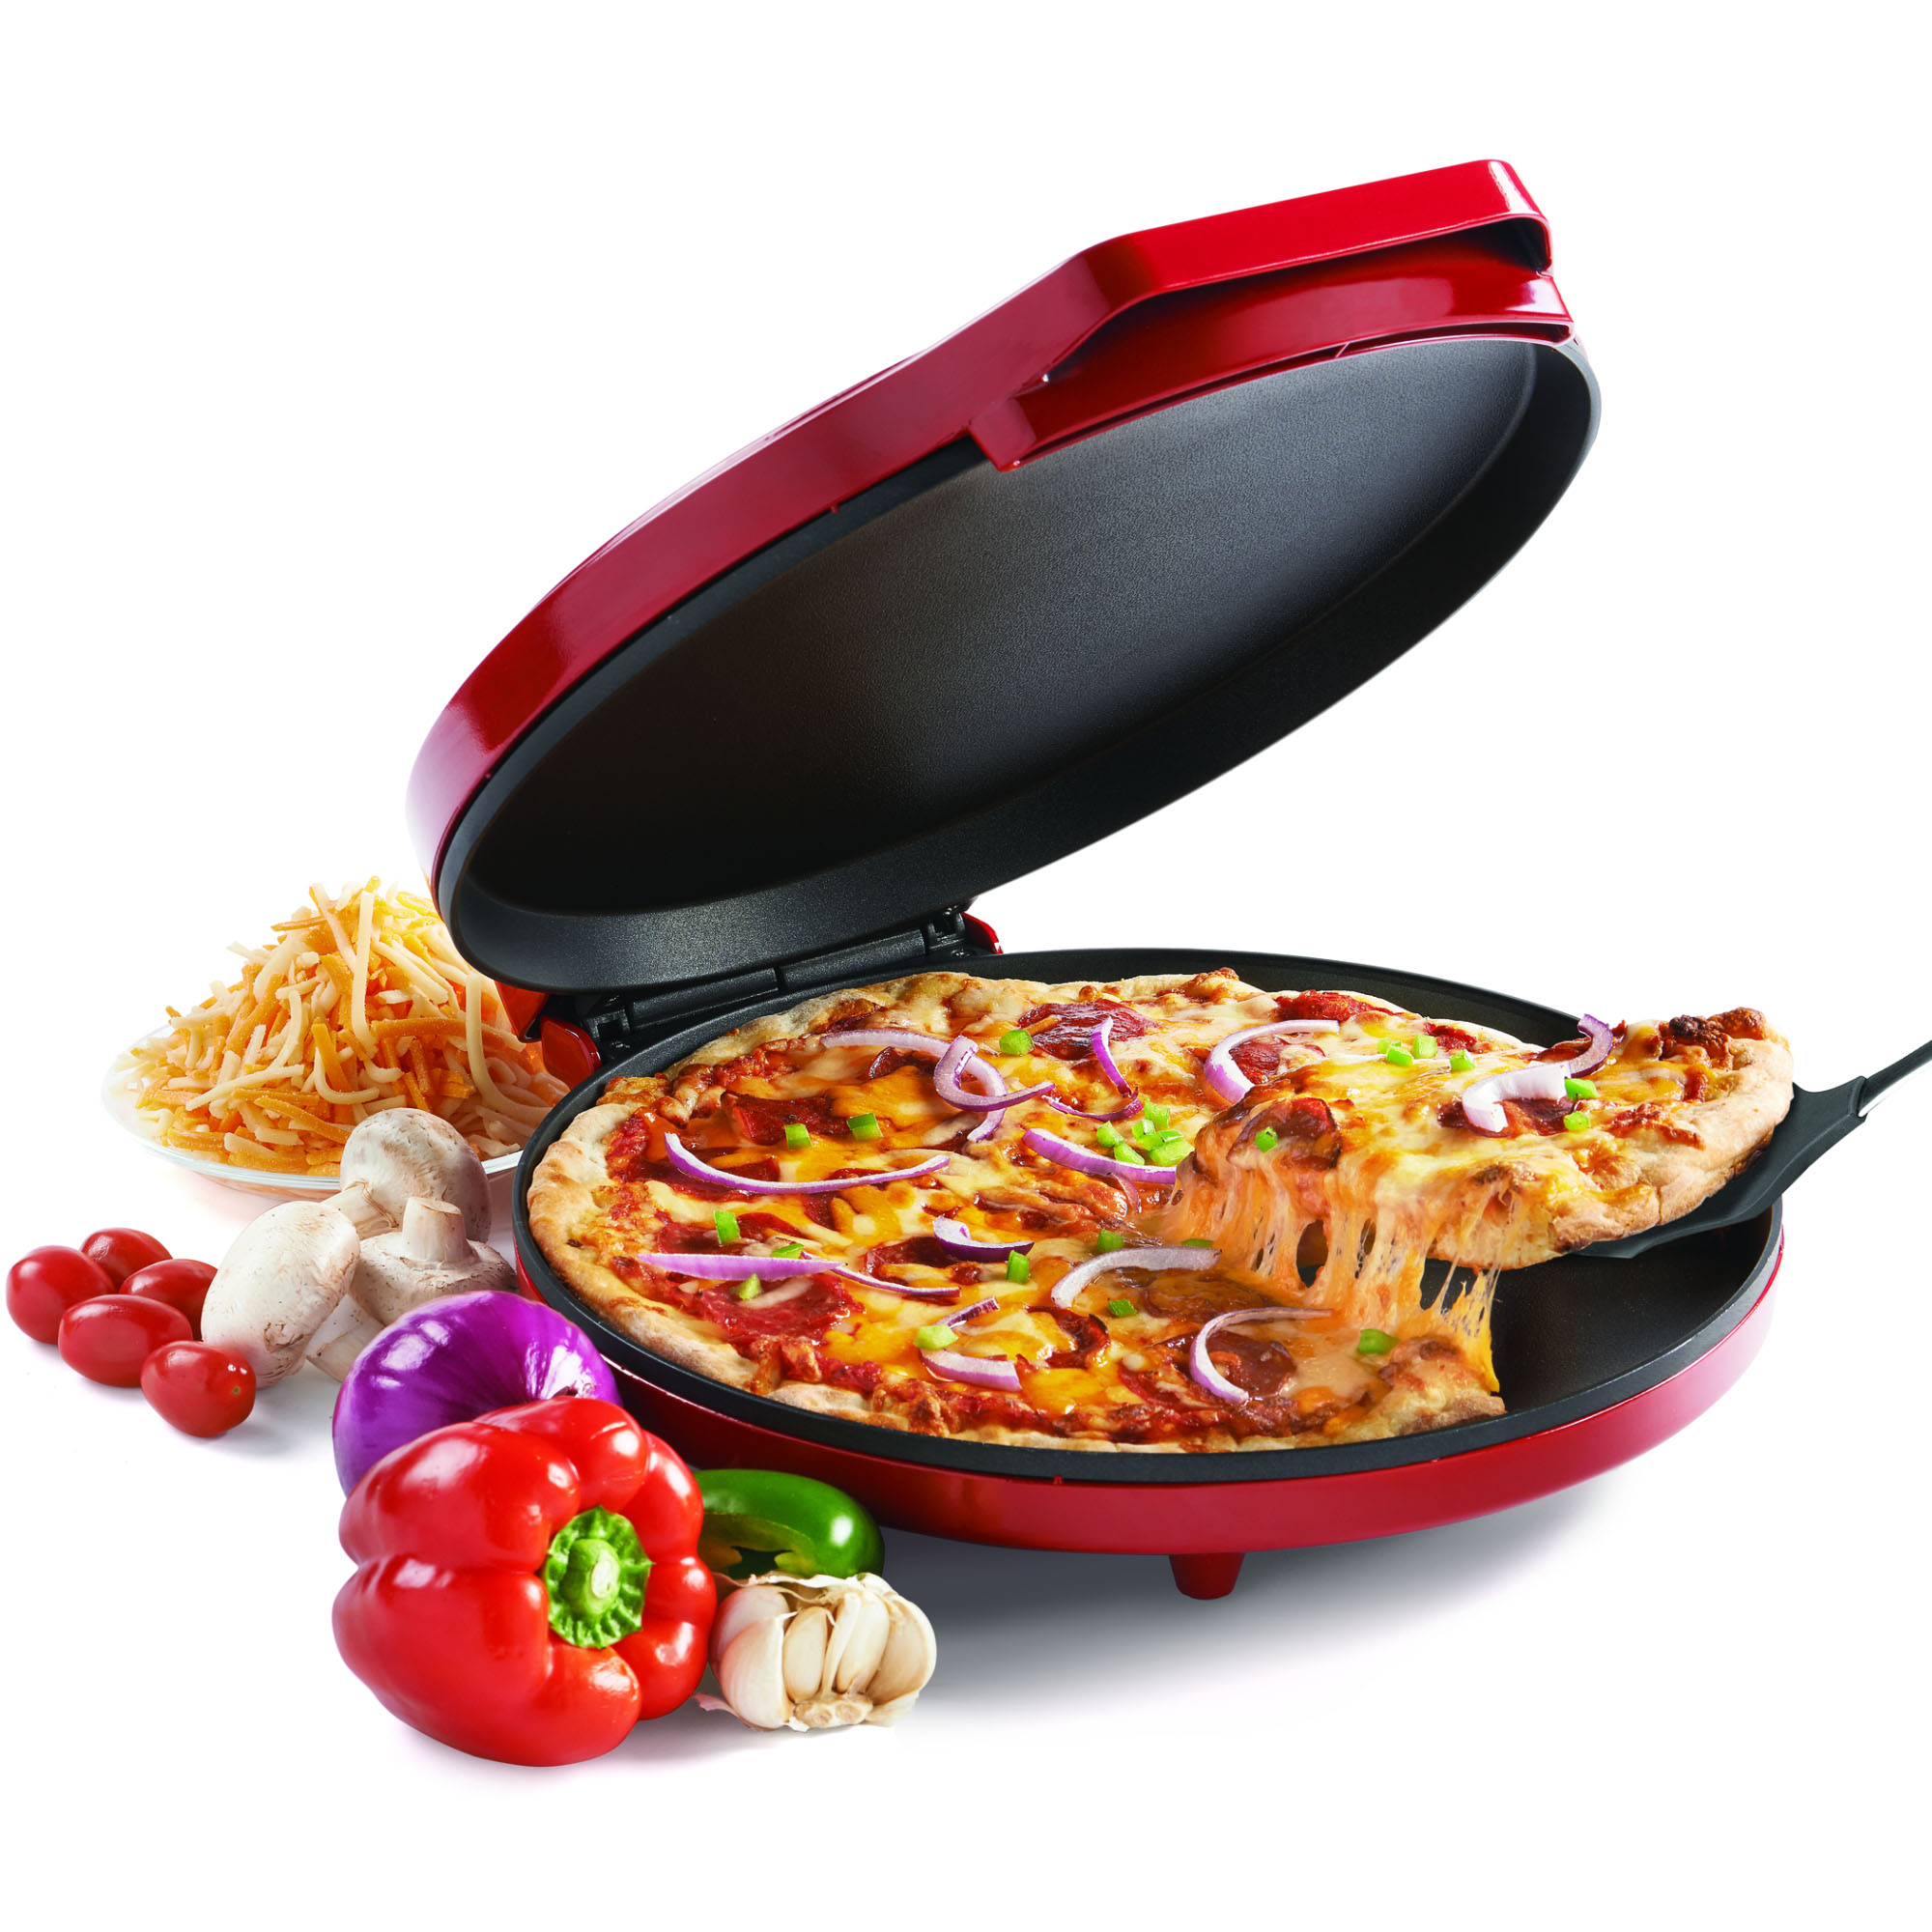 Betty Crocker 12 Inch Pizza Maker